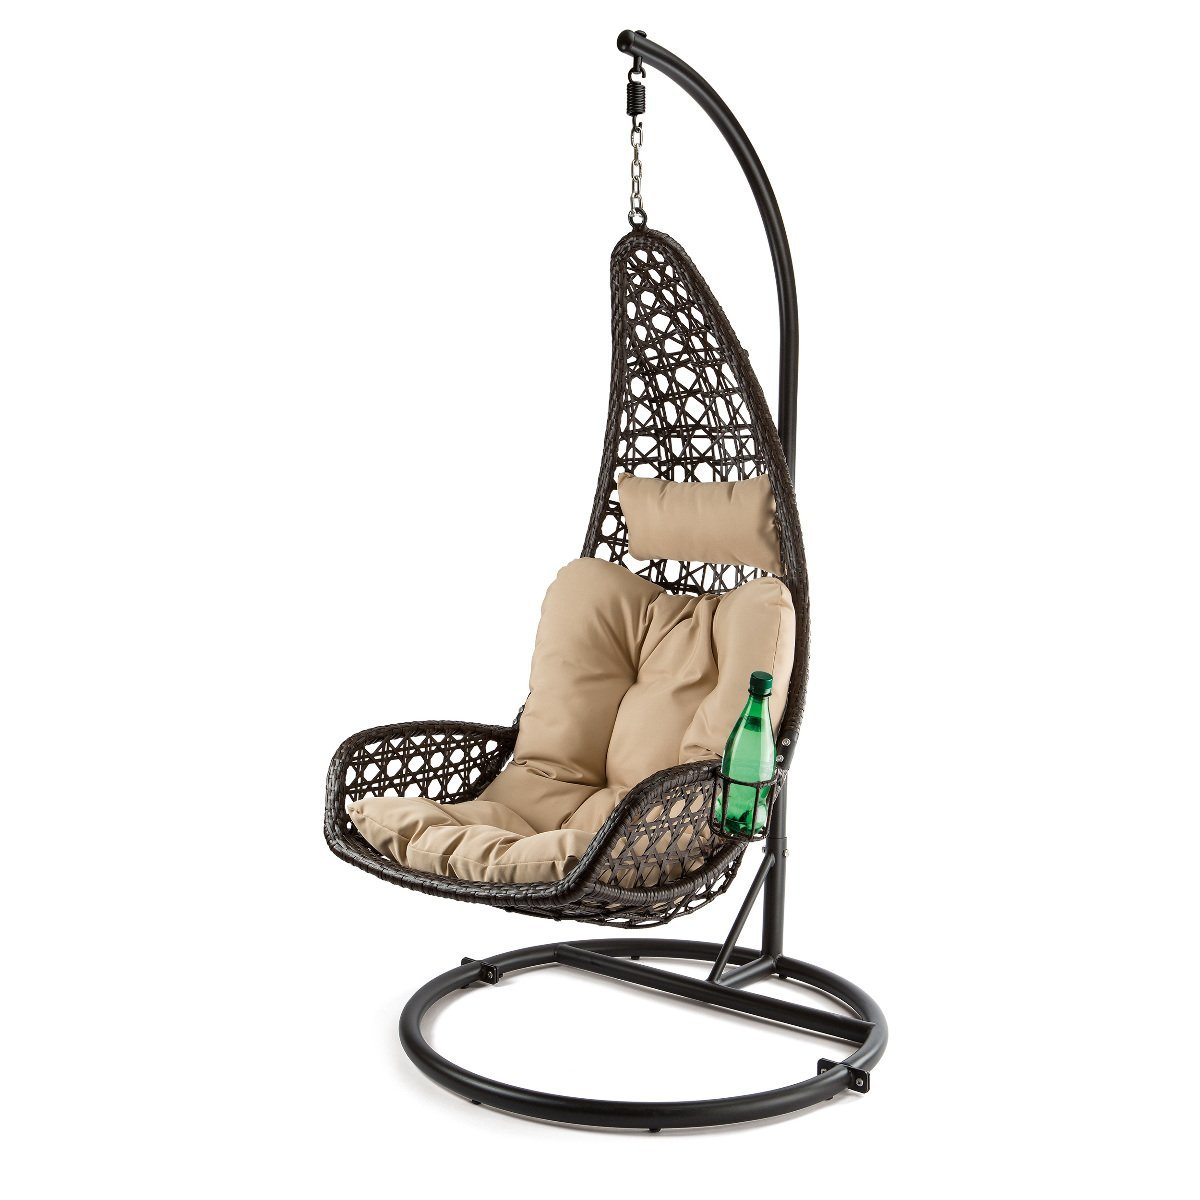 Hanging chair with cup holder- product review